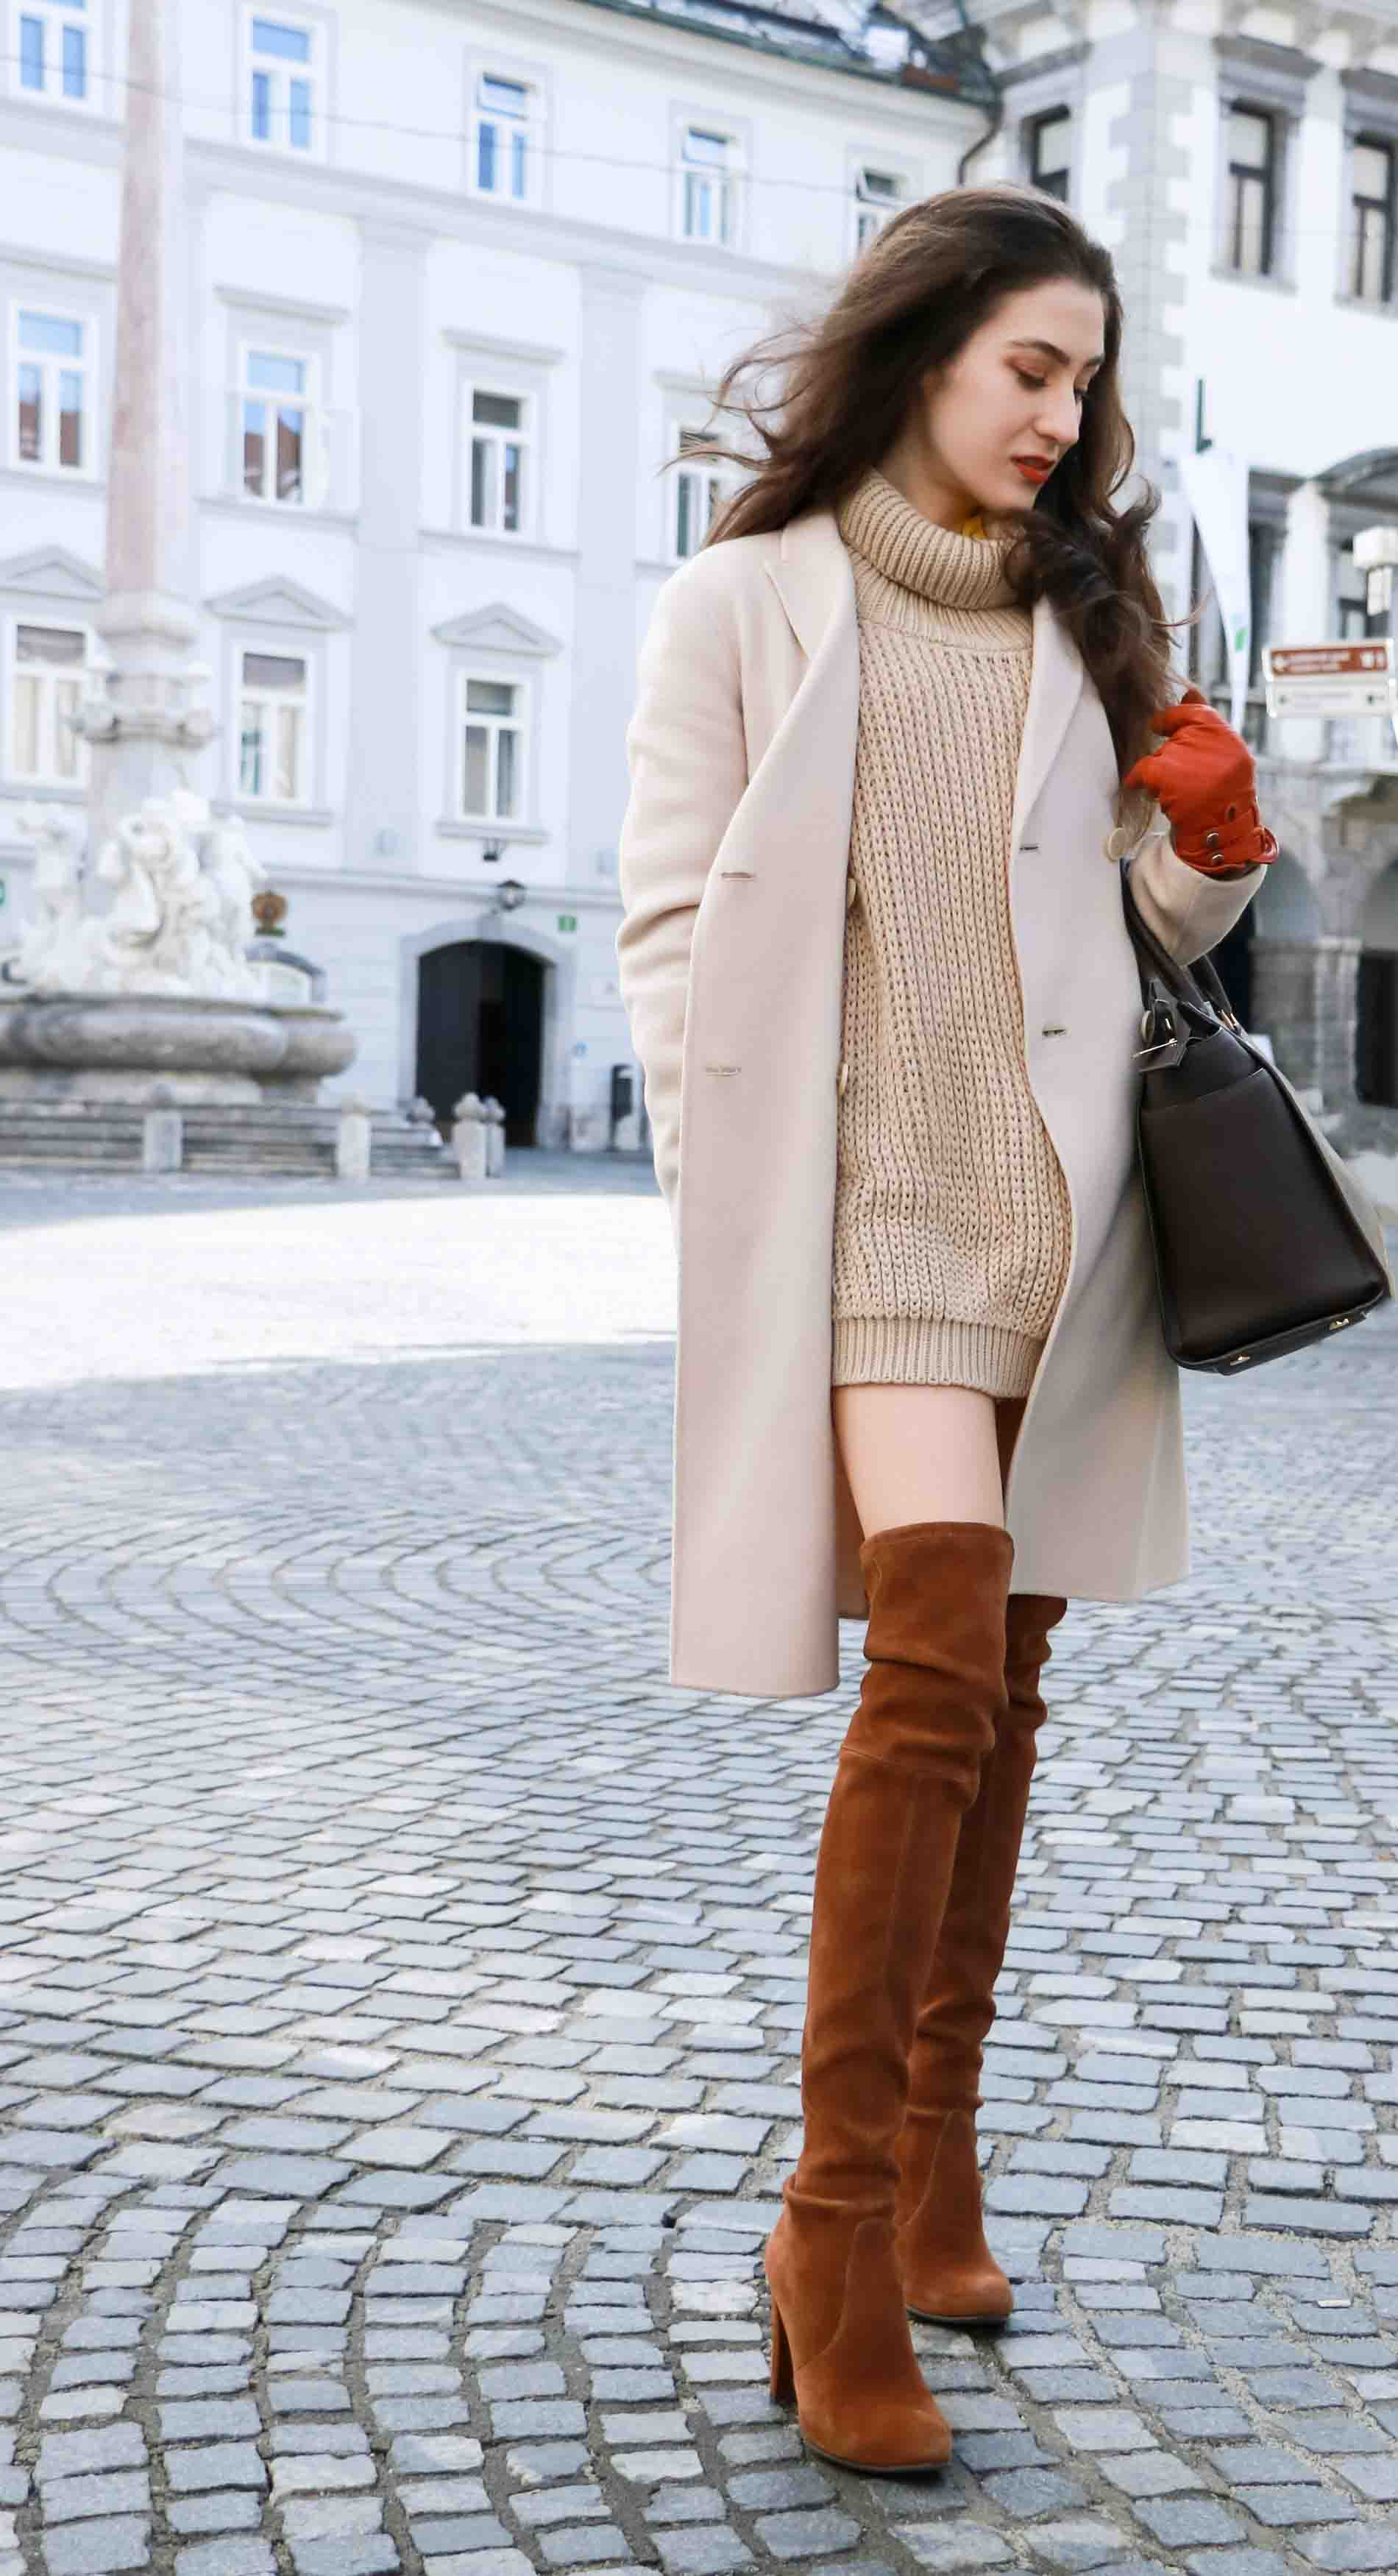 Fashion Blogger Veronika Lipar of Brunette from Wall wearing double breasted coat, cable knit turtleneck camel sweater dress and Stuart Weitzman Highland boots, brown Michael Kors Selma bag, leather gloves